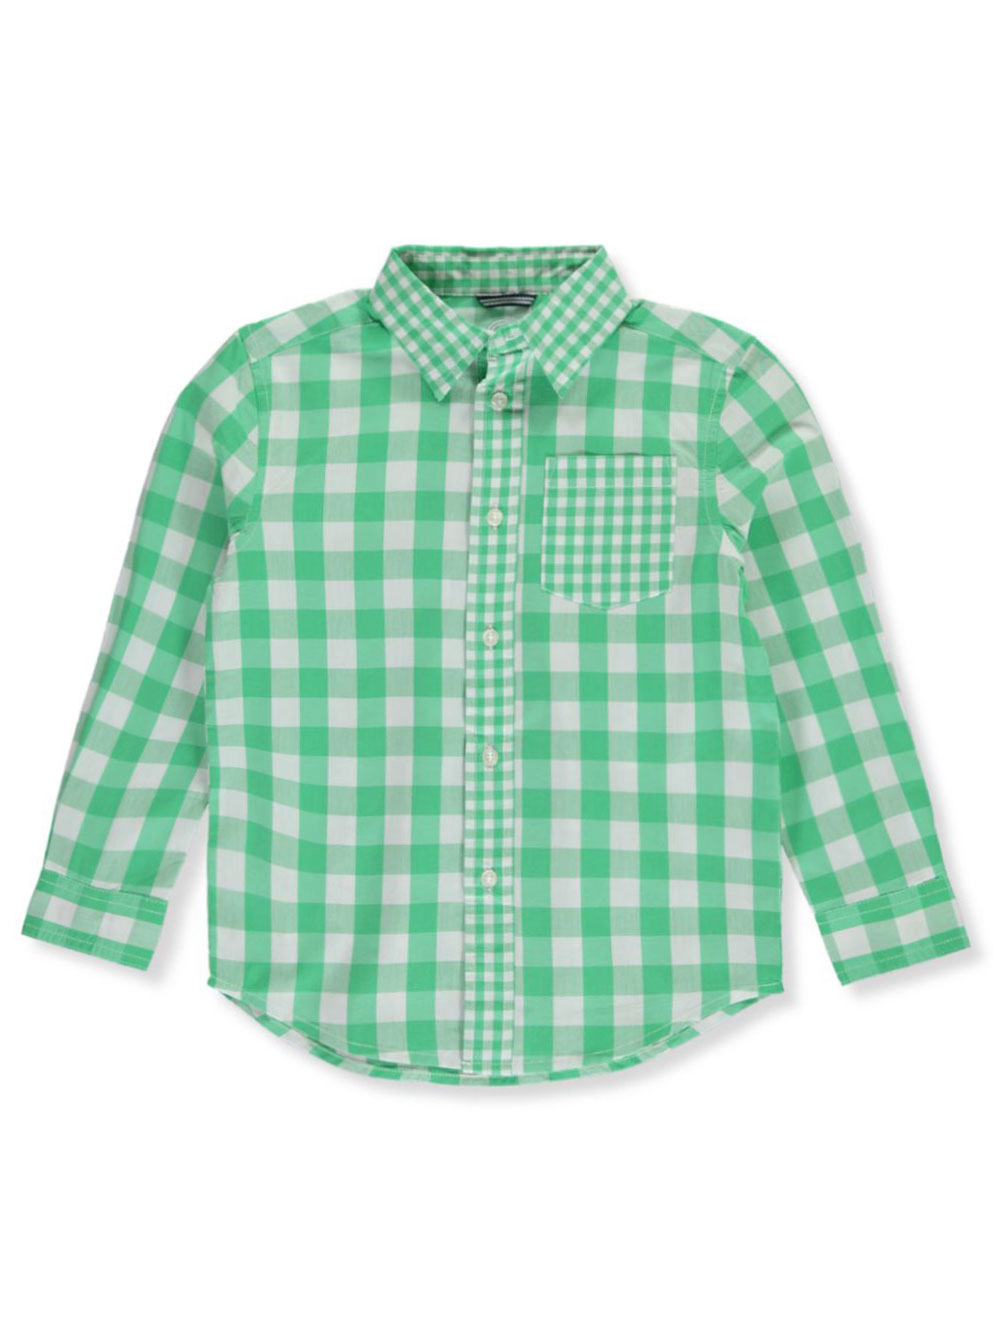 Size 10-12 Button-Downs for Boys